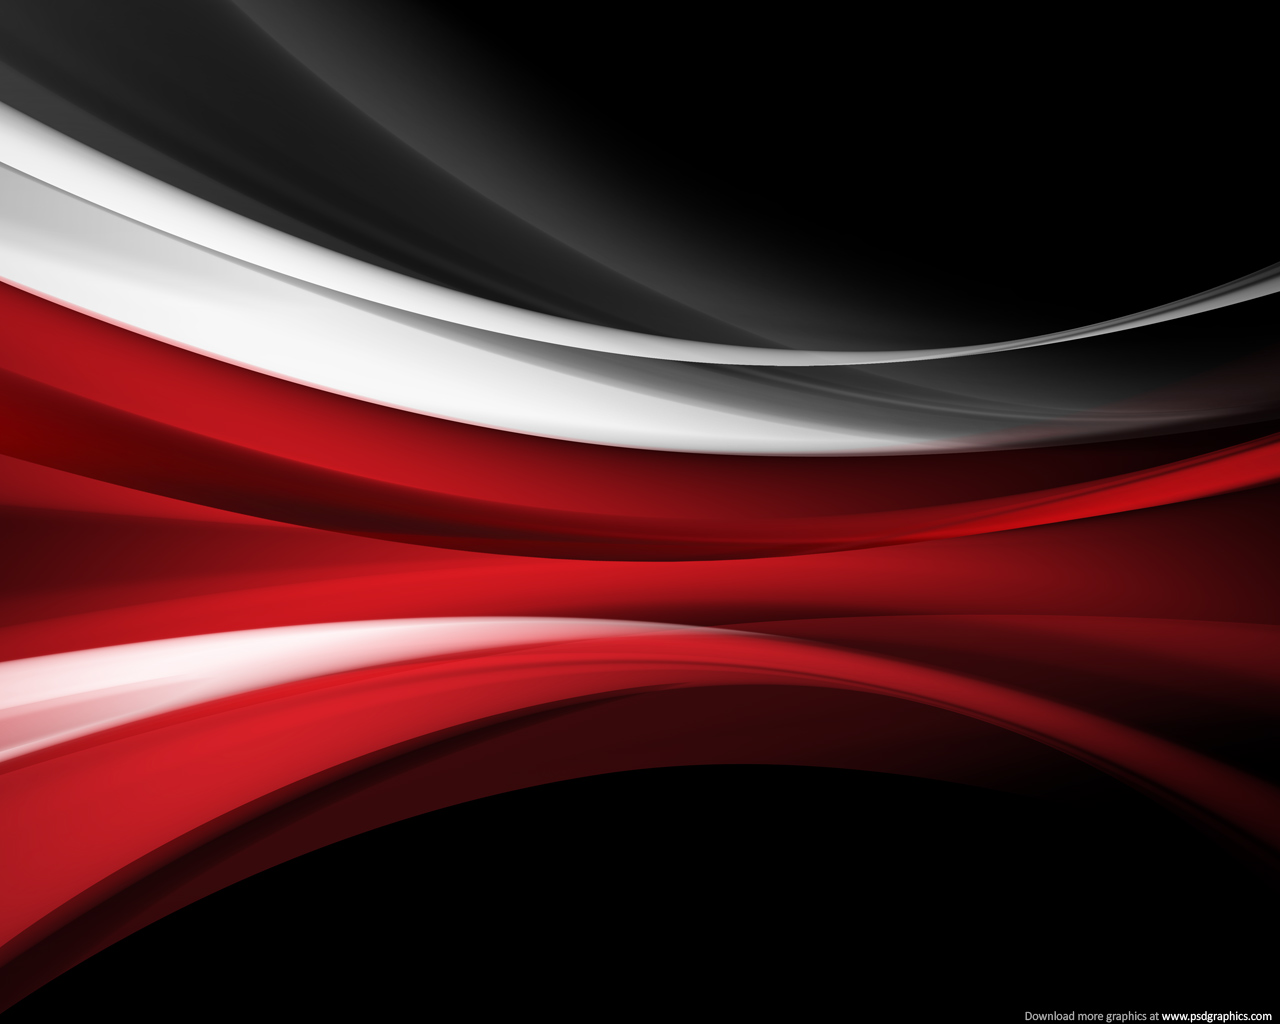 Red And White Graphic Wallpaper Cool Graphic Designs Invoice 1280x1024